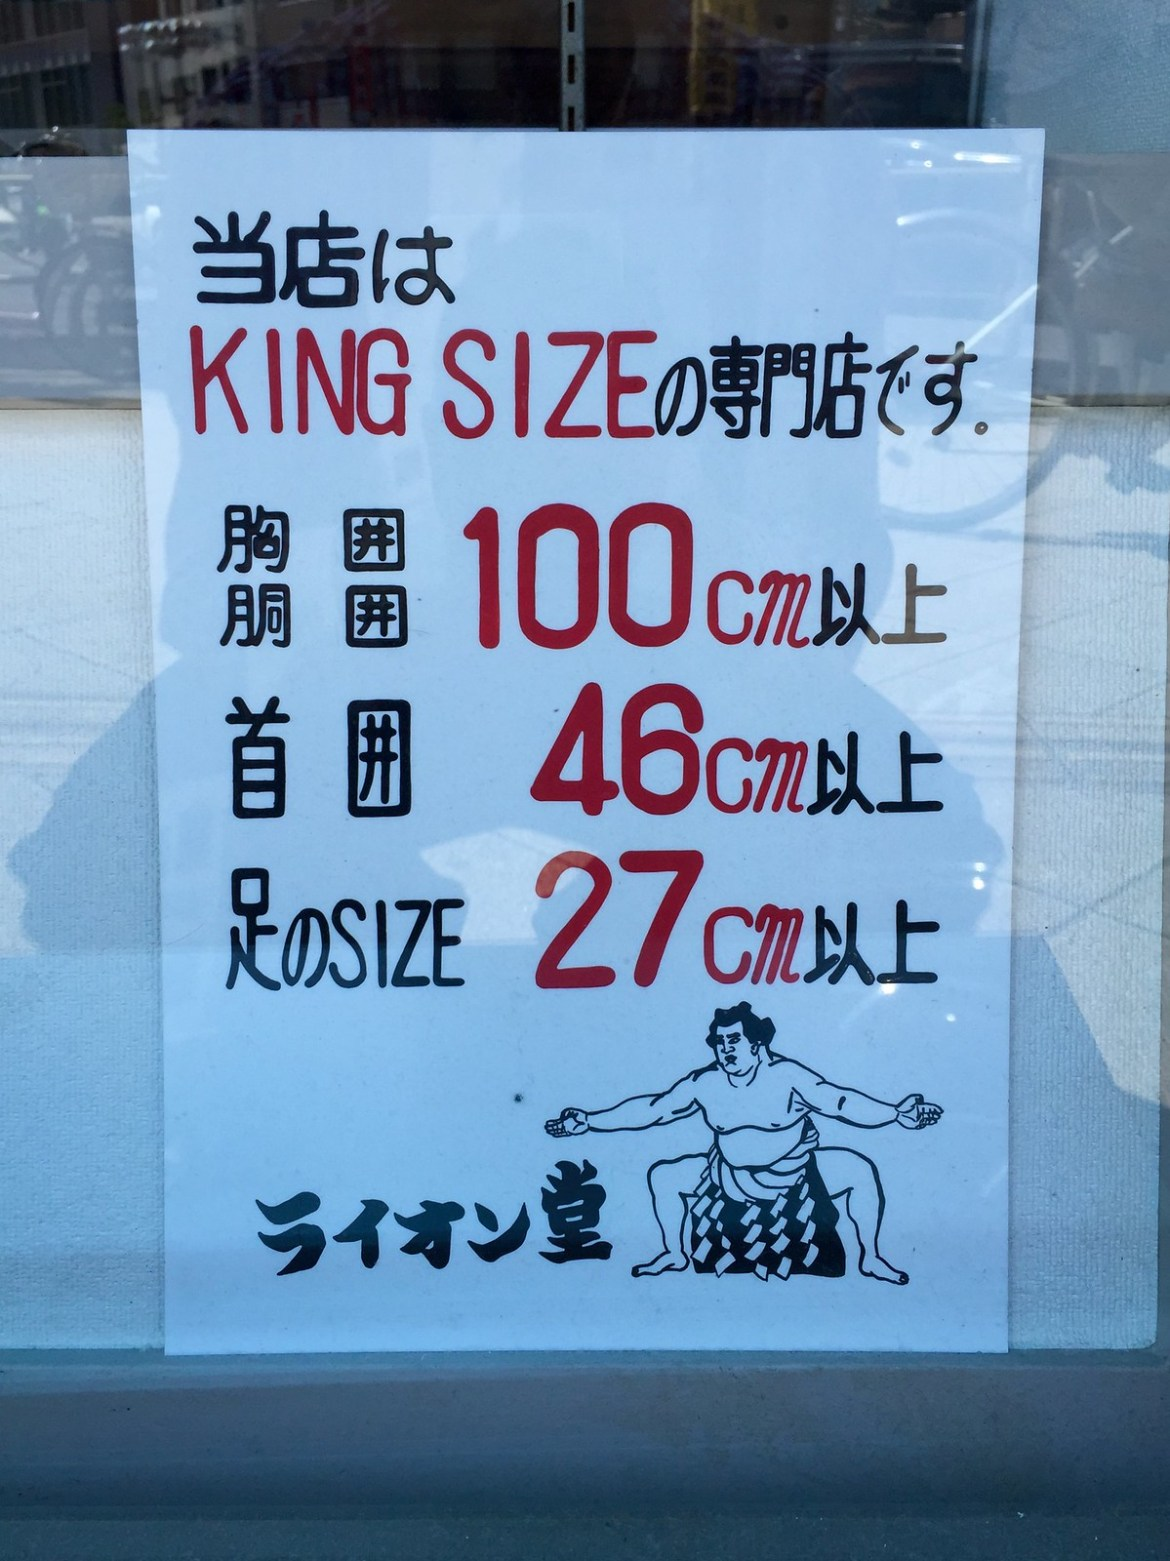 Lion-do, shop for Sumo size clothing at Ryogoku in Tokyo